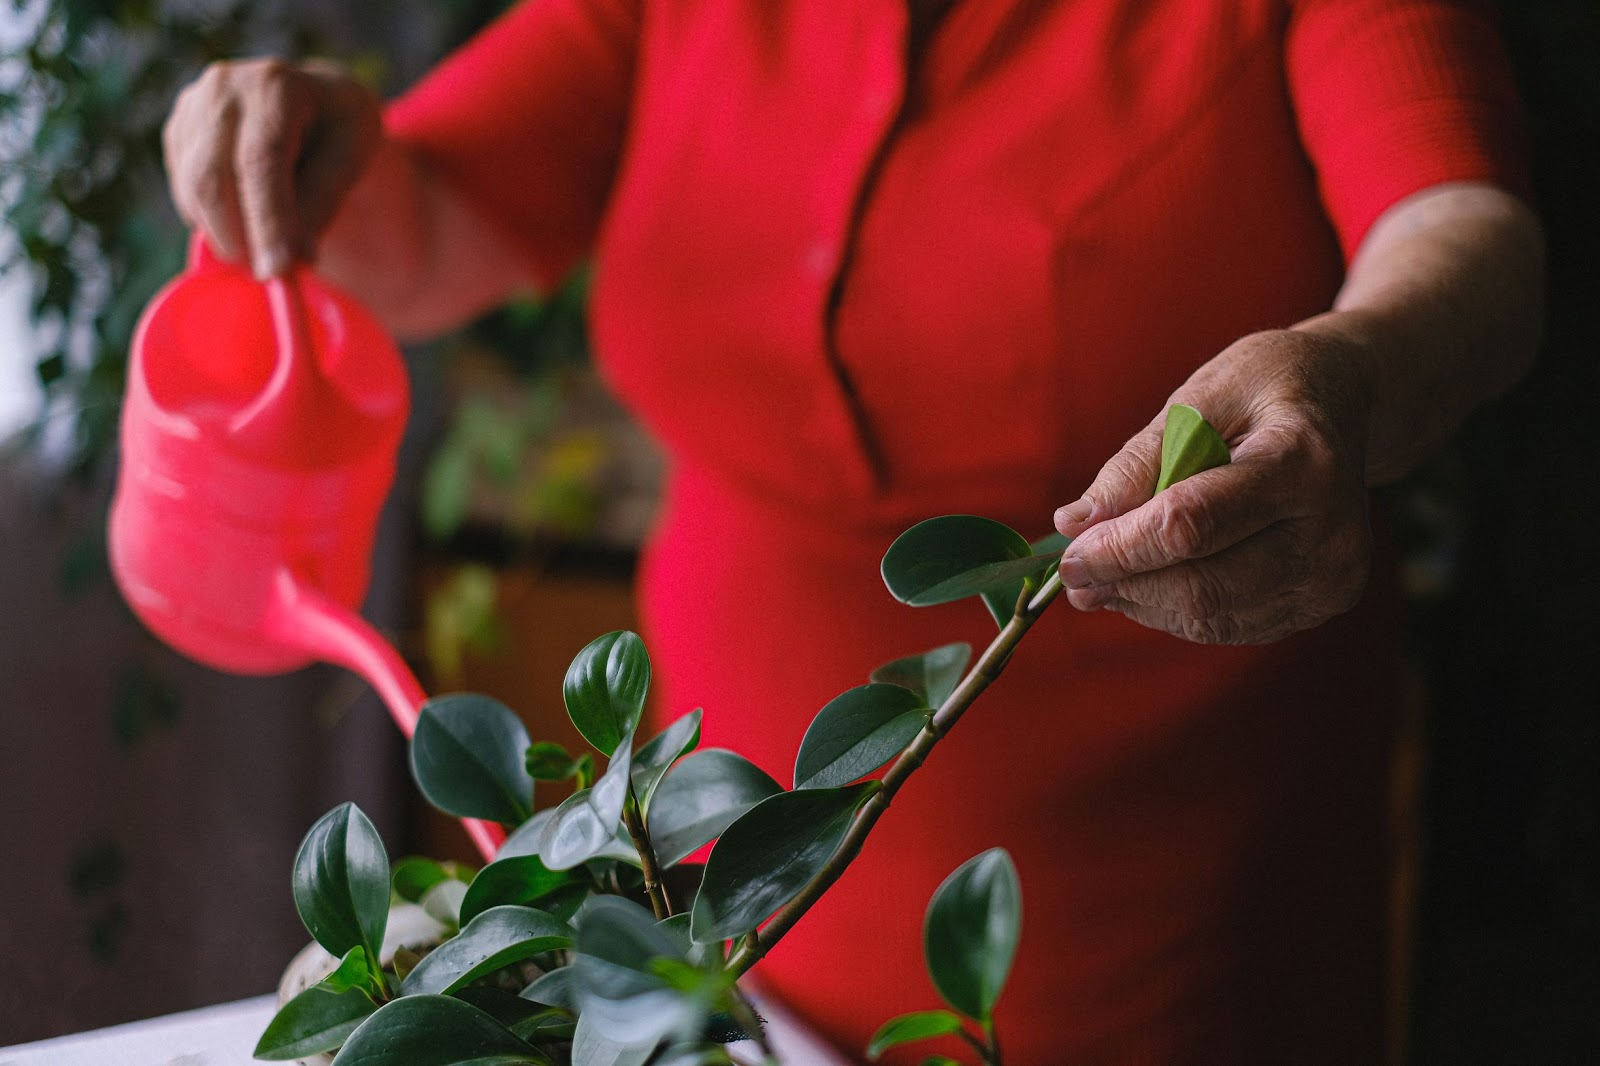 Woman wearing red watering a plant